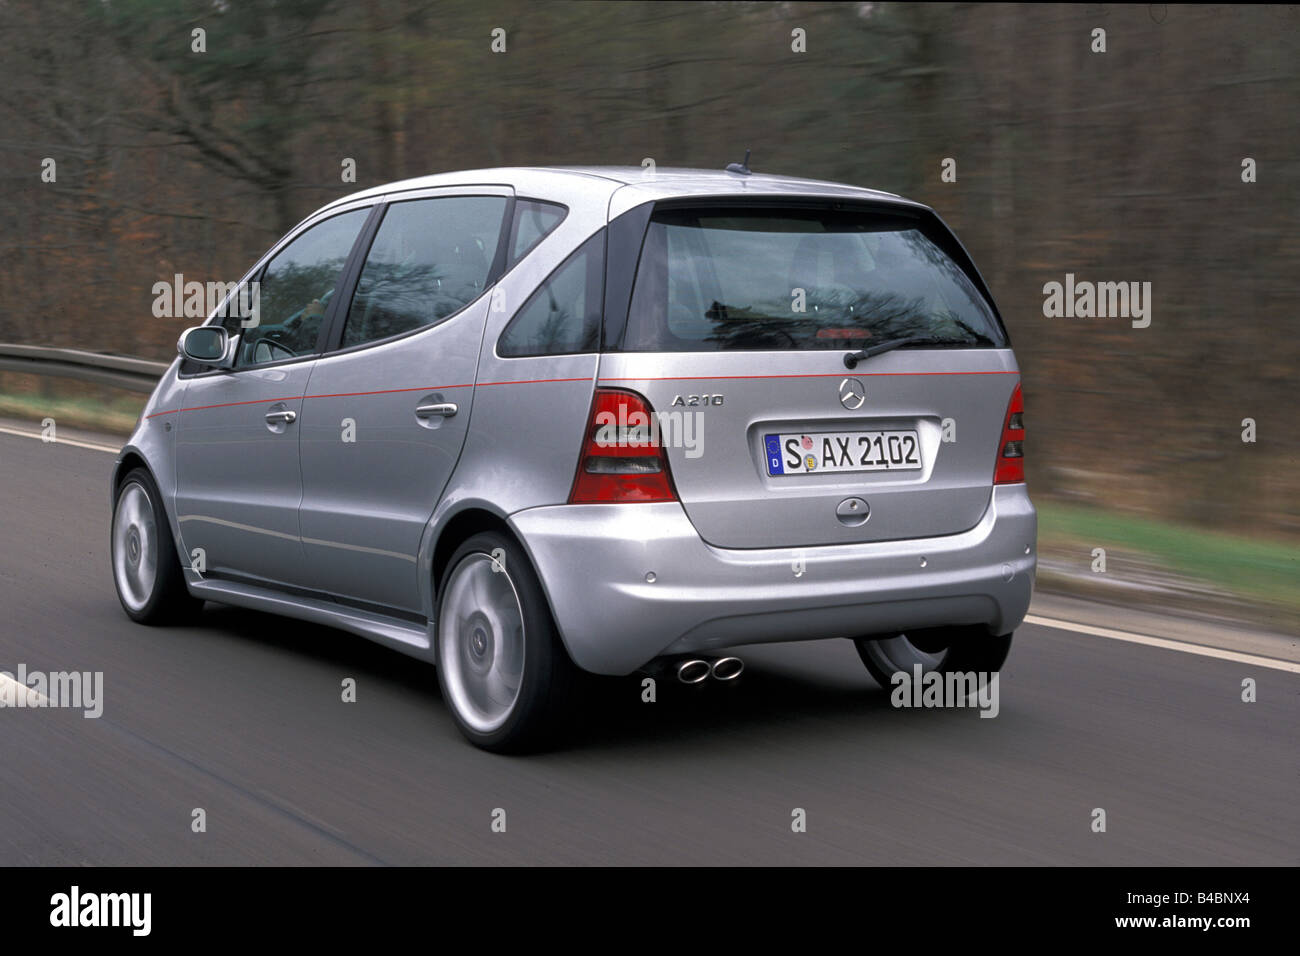 Car, Mercedes A 210 Evolution, A-Klasse, model year 2001-, silver, Lower middle-sized class, Limousine, FGHPS, Tuning, - Stock Image